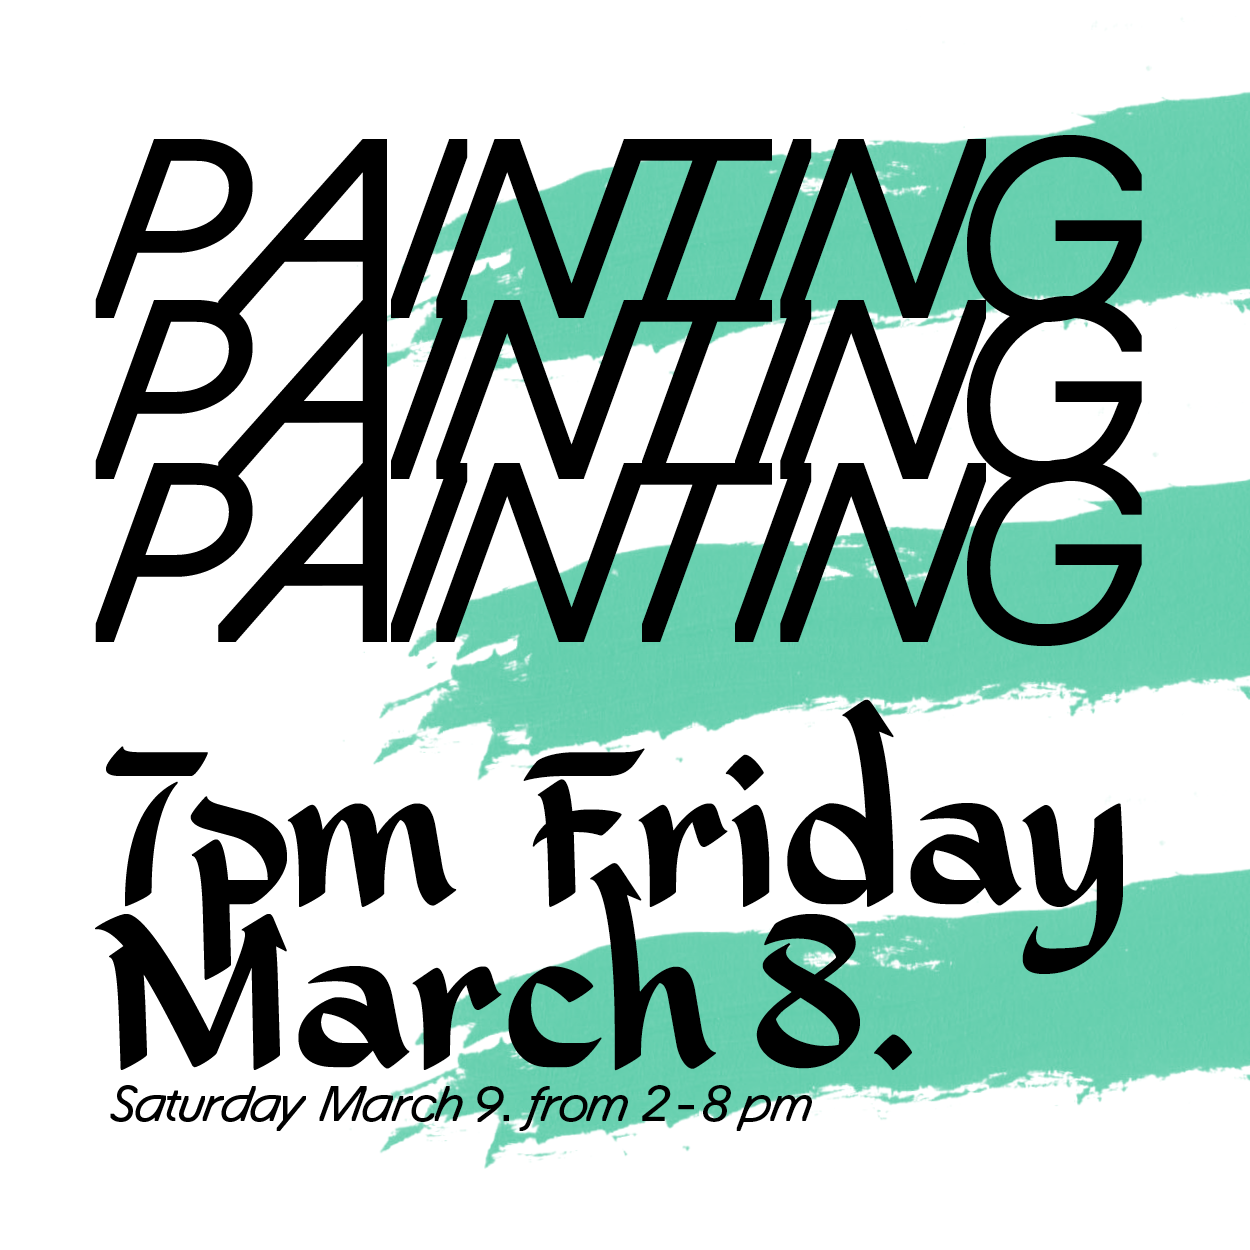 PAINTING PAINTING PAINTING image